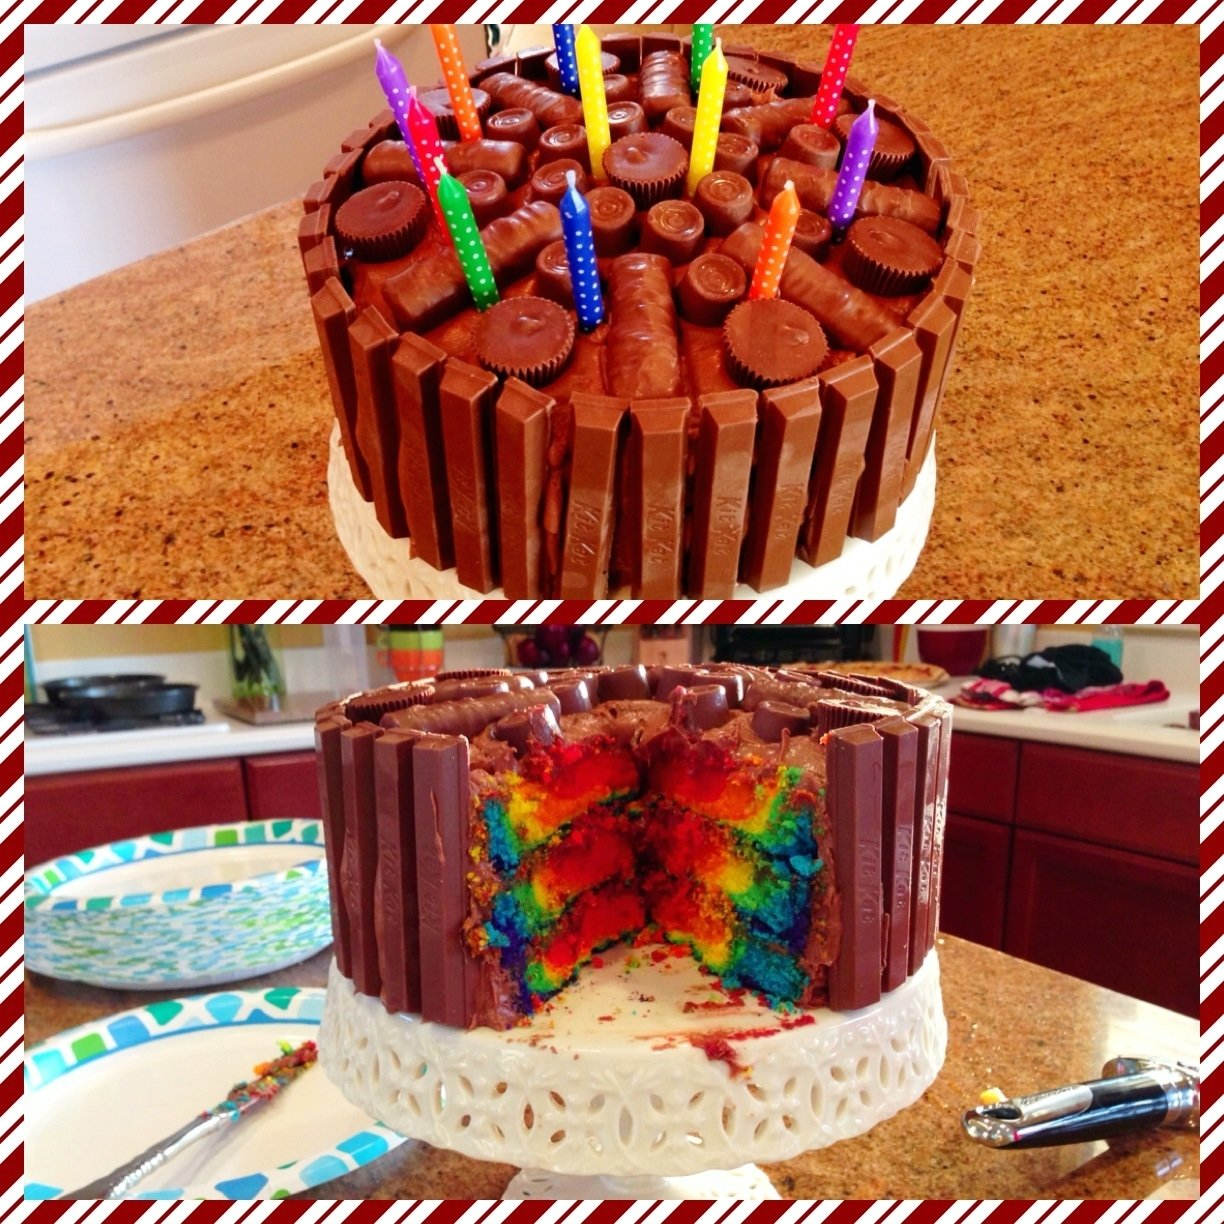 10 Attractive 12 Year Old Birthday Ideas birthday cake for my 12 year old thank you pintrest for the great 15 2020